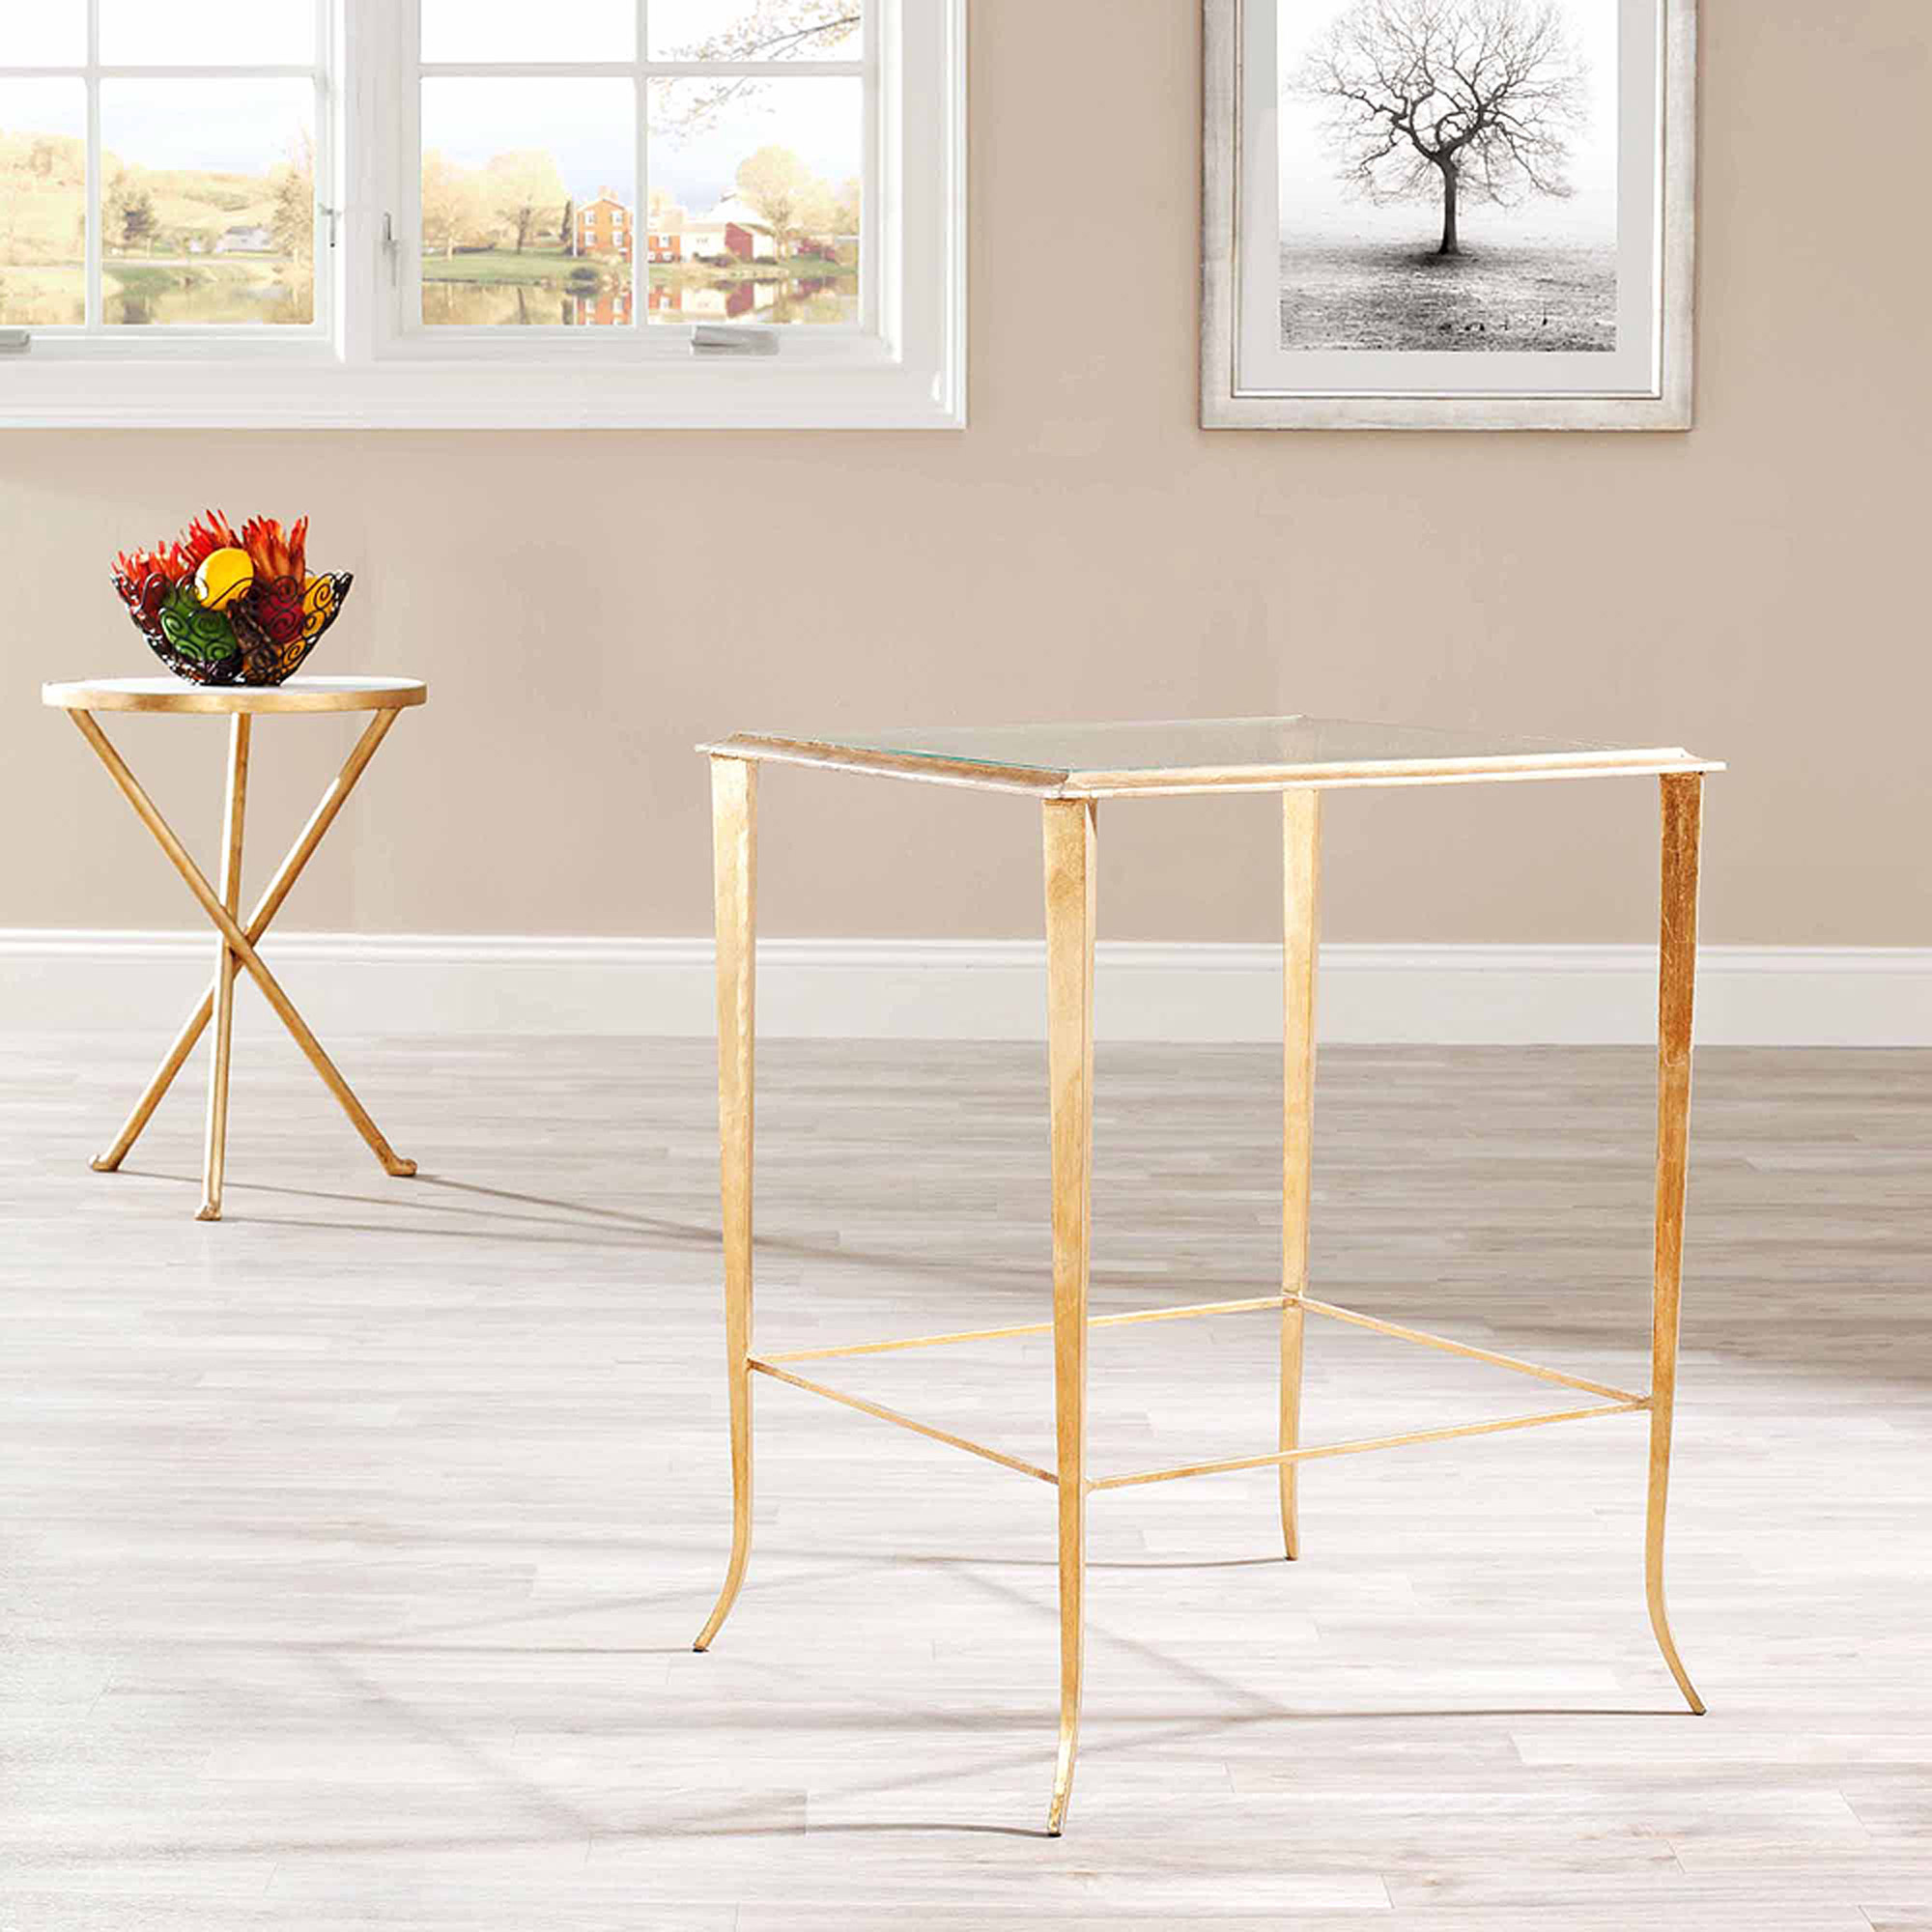 Safavieh Tory Accent Table, Clear Glass Top/Gold Legs